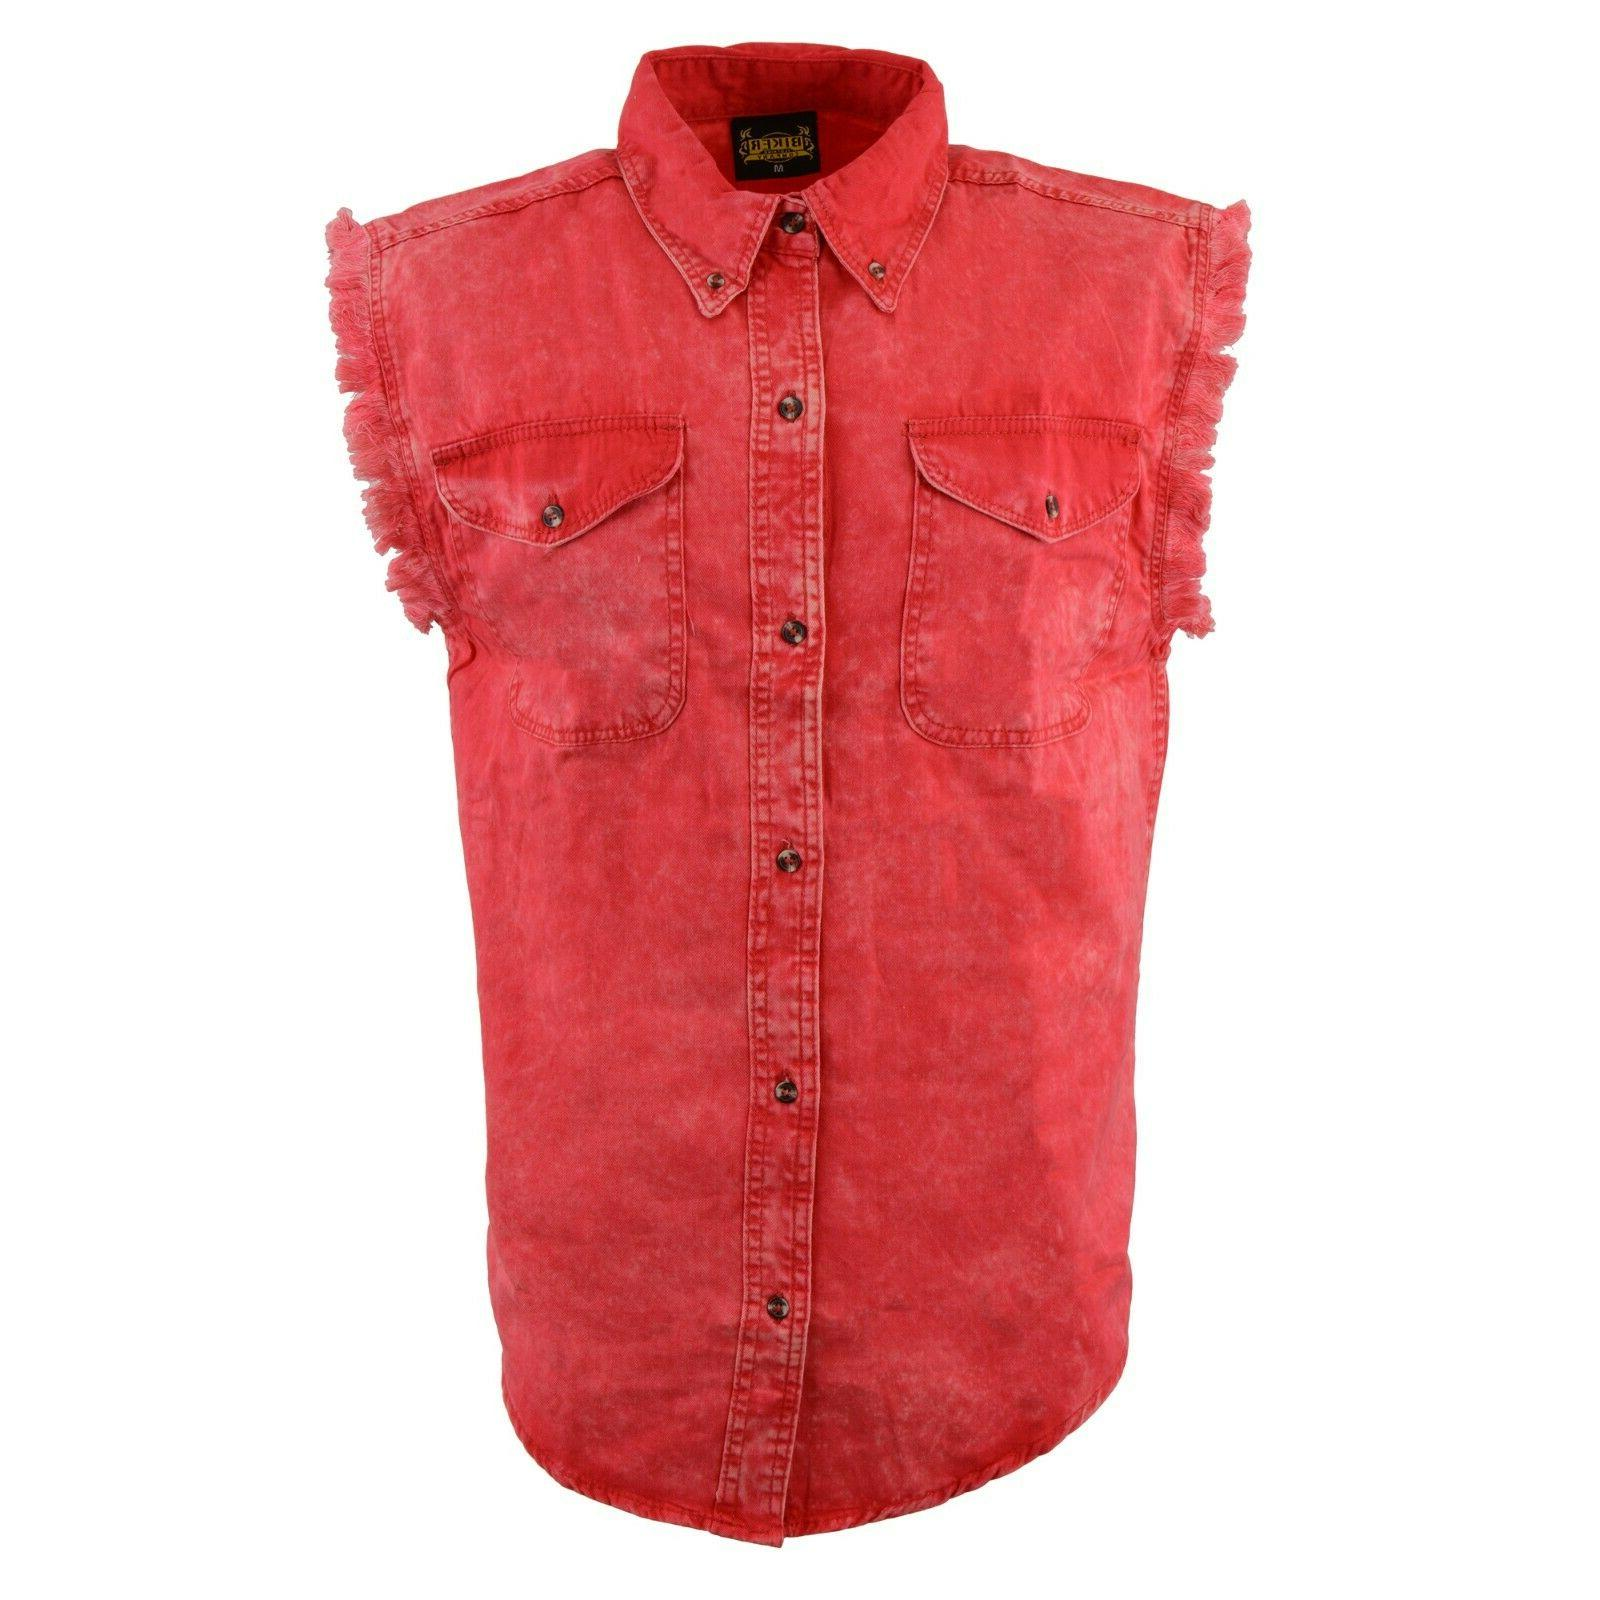 biker clothing mens red and beige sleeveless